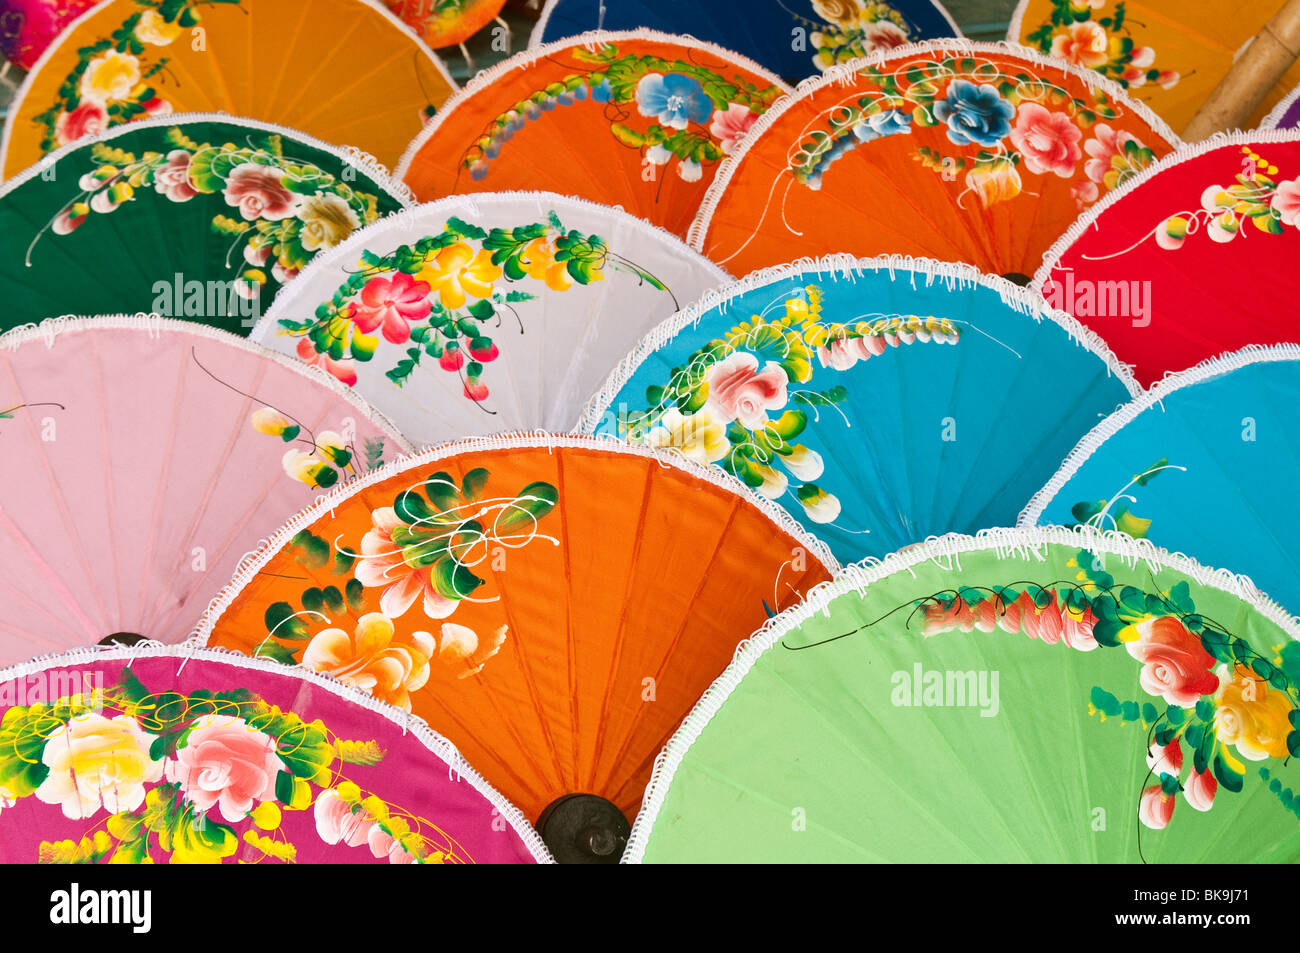 Hand-painted umbrellas for sale at The Umbrella Factory in Chiang Mai, Thailand. - Stock Image